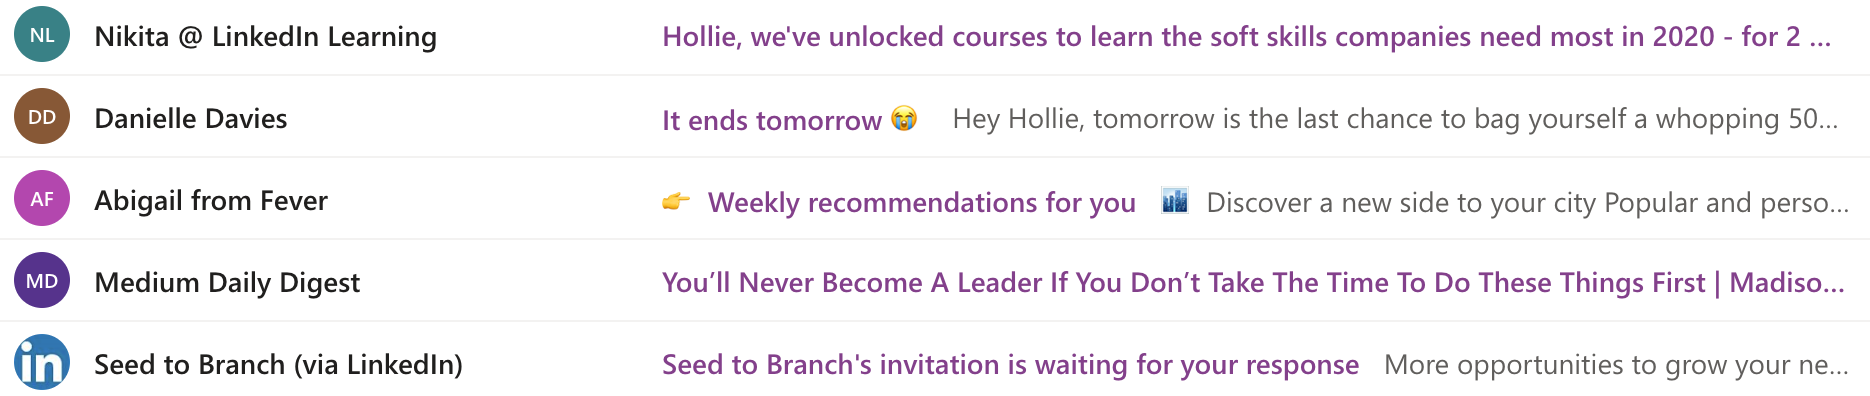 Image showing examples of subject lines in an inbox, some containing emojis and some plain text